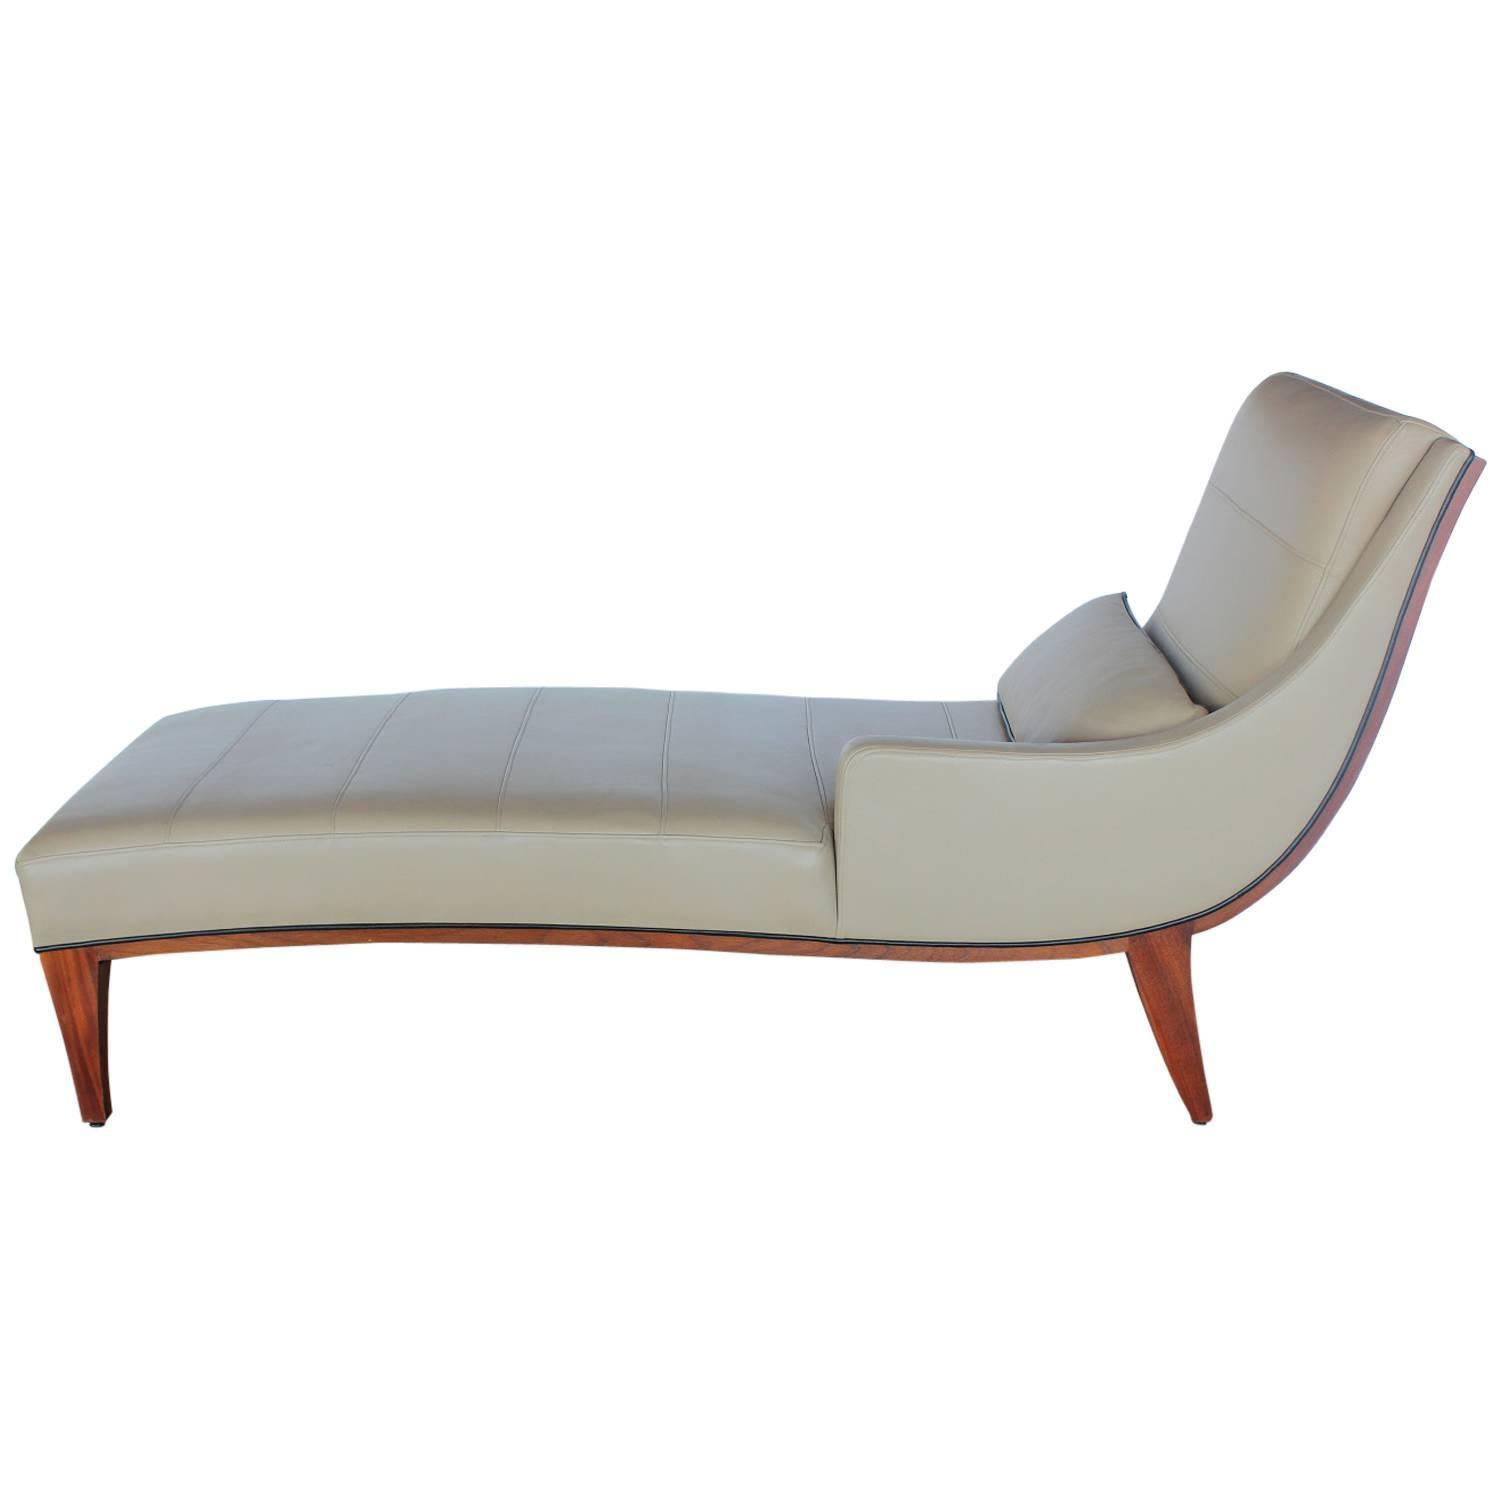 106 modern leather chaise longue le corbusier chaise